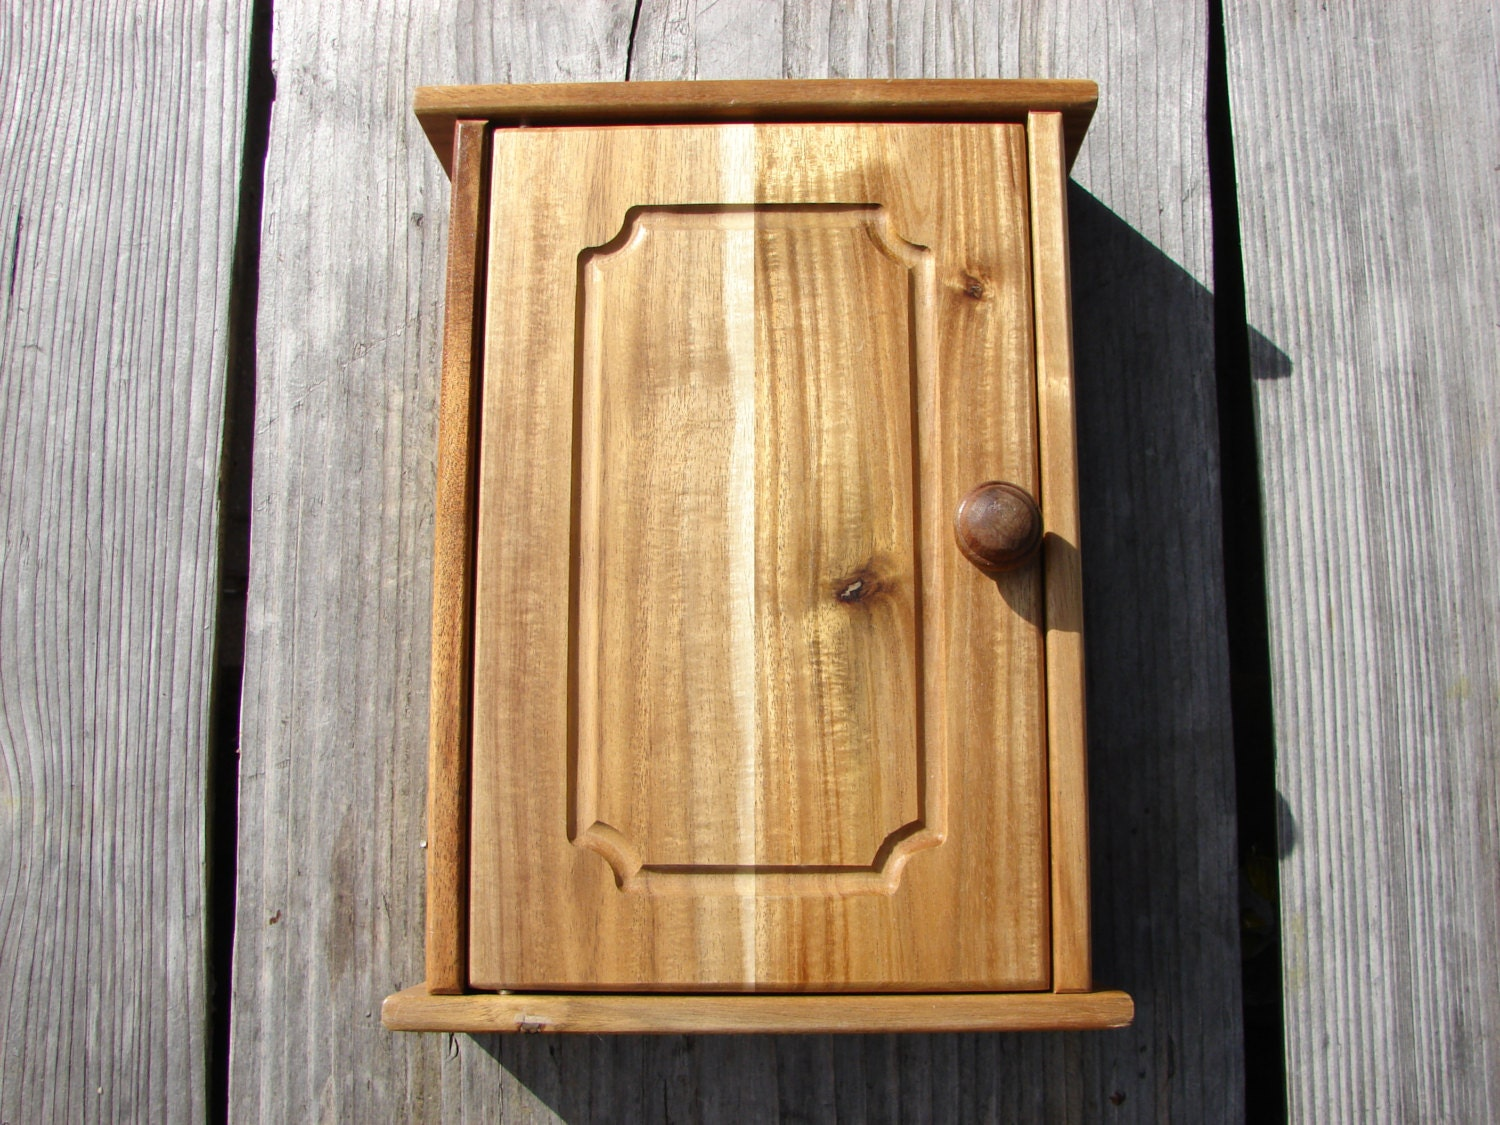 Wooden Wall Boxes : Swedish vintage wooden key box wall hanging cabinet